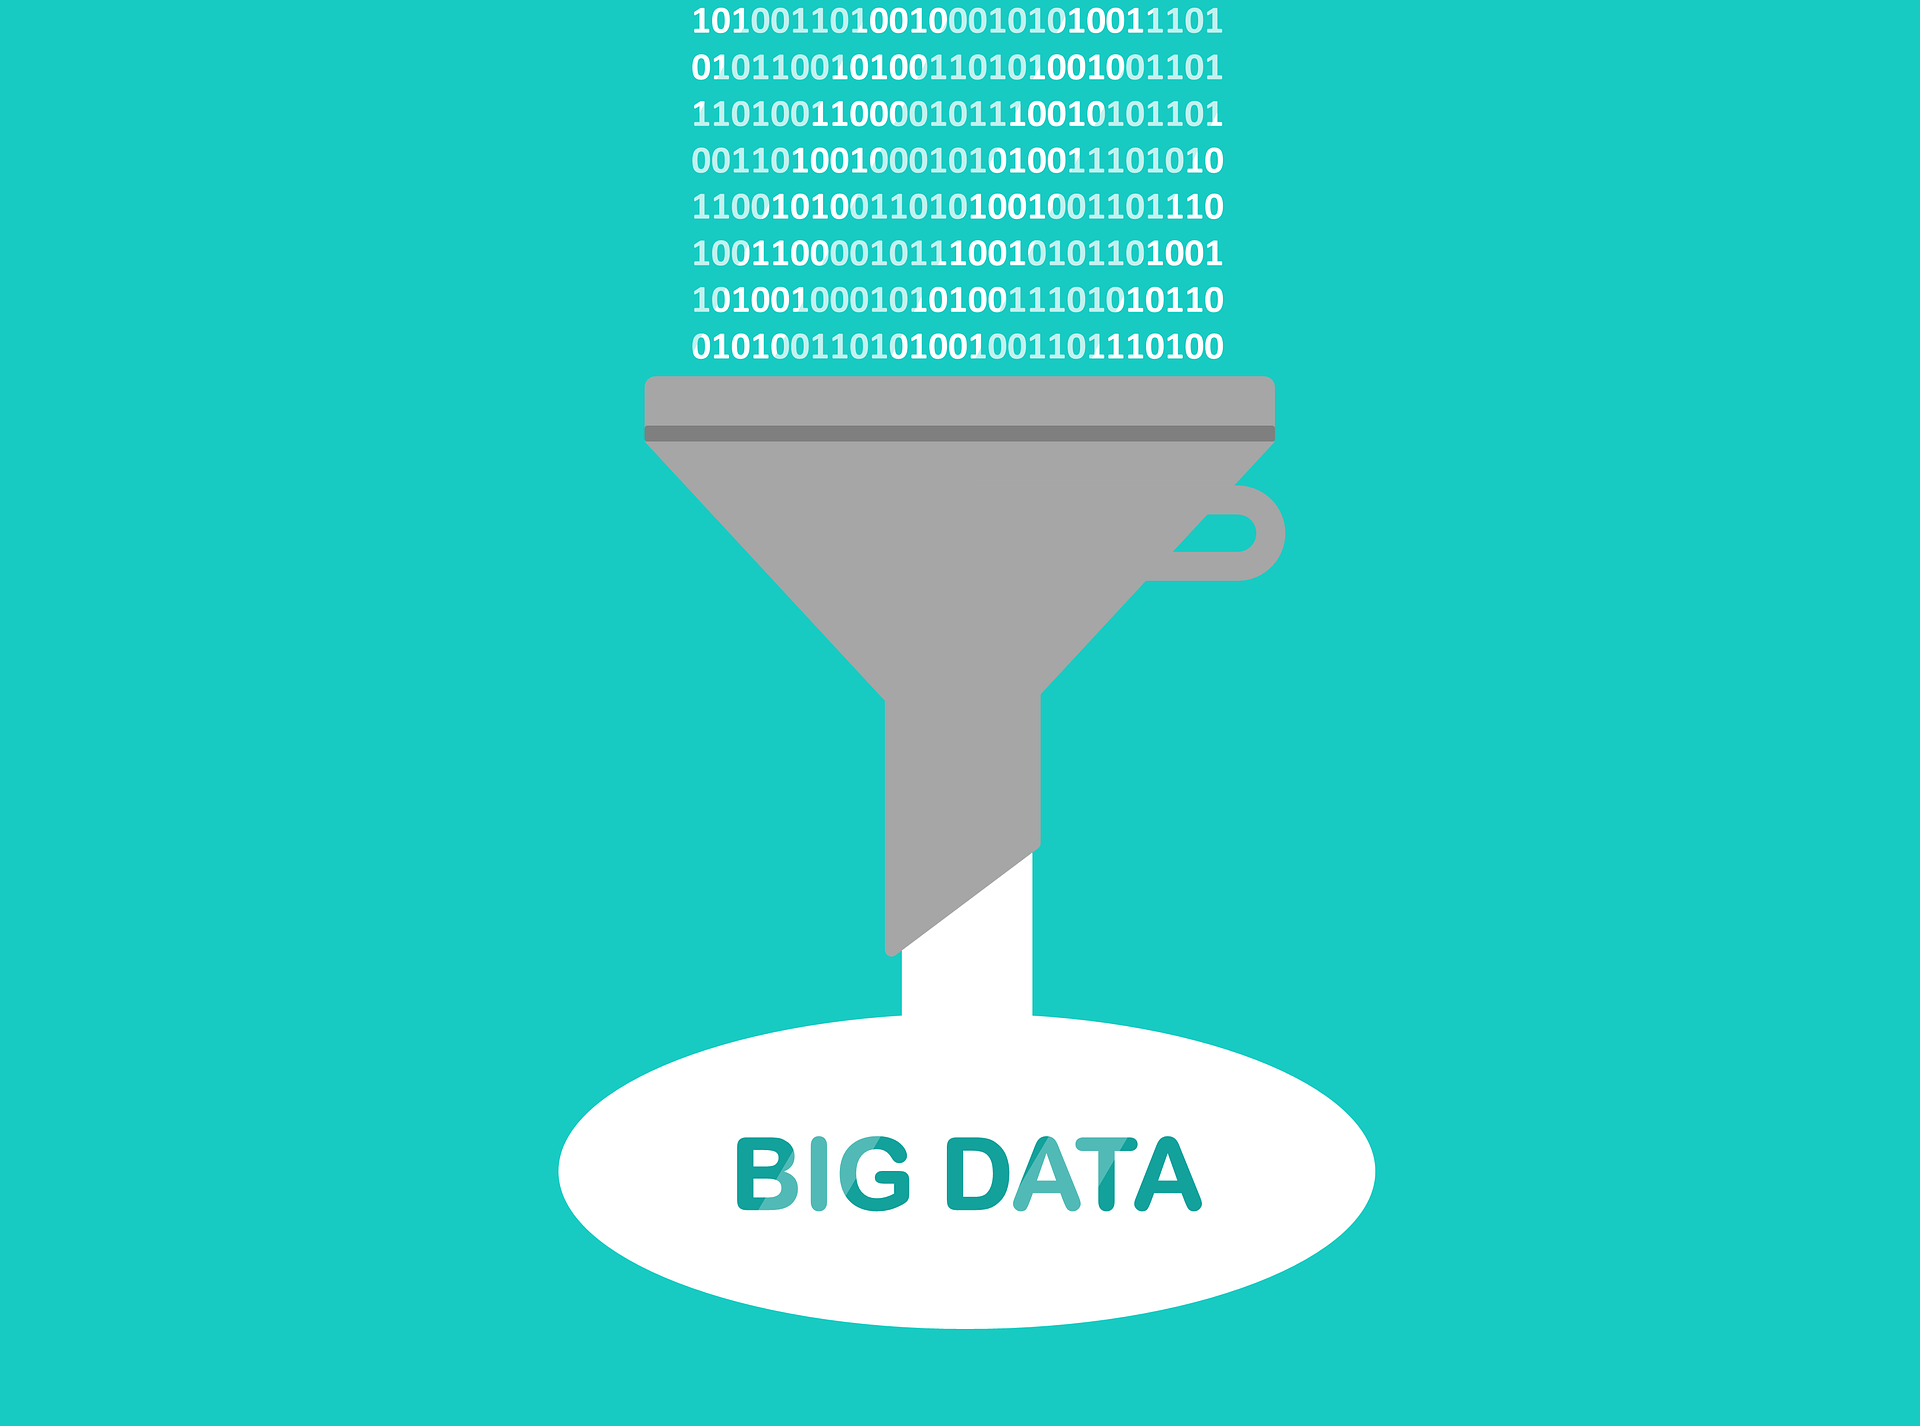 Funil de big data